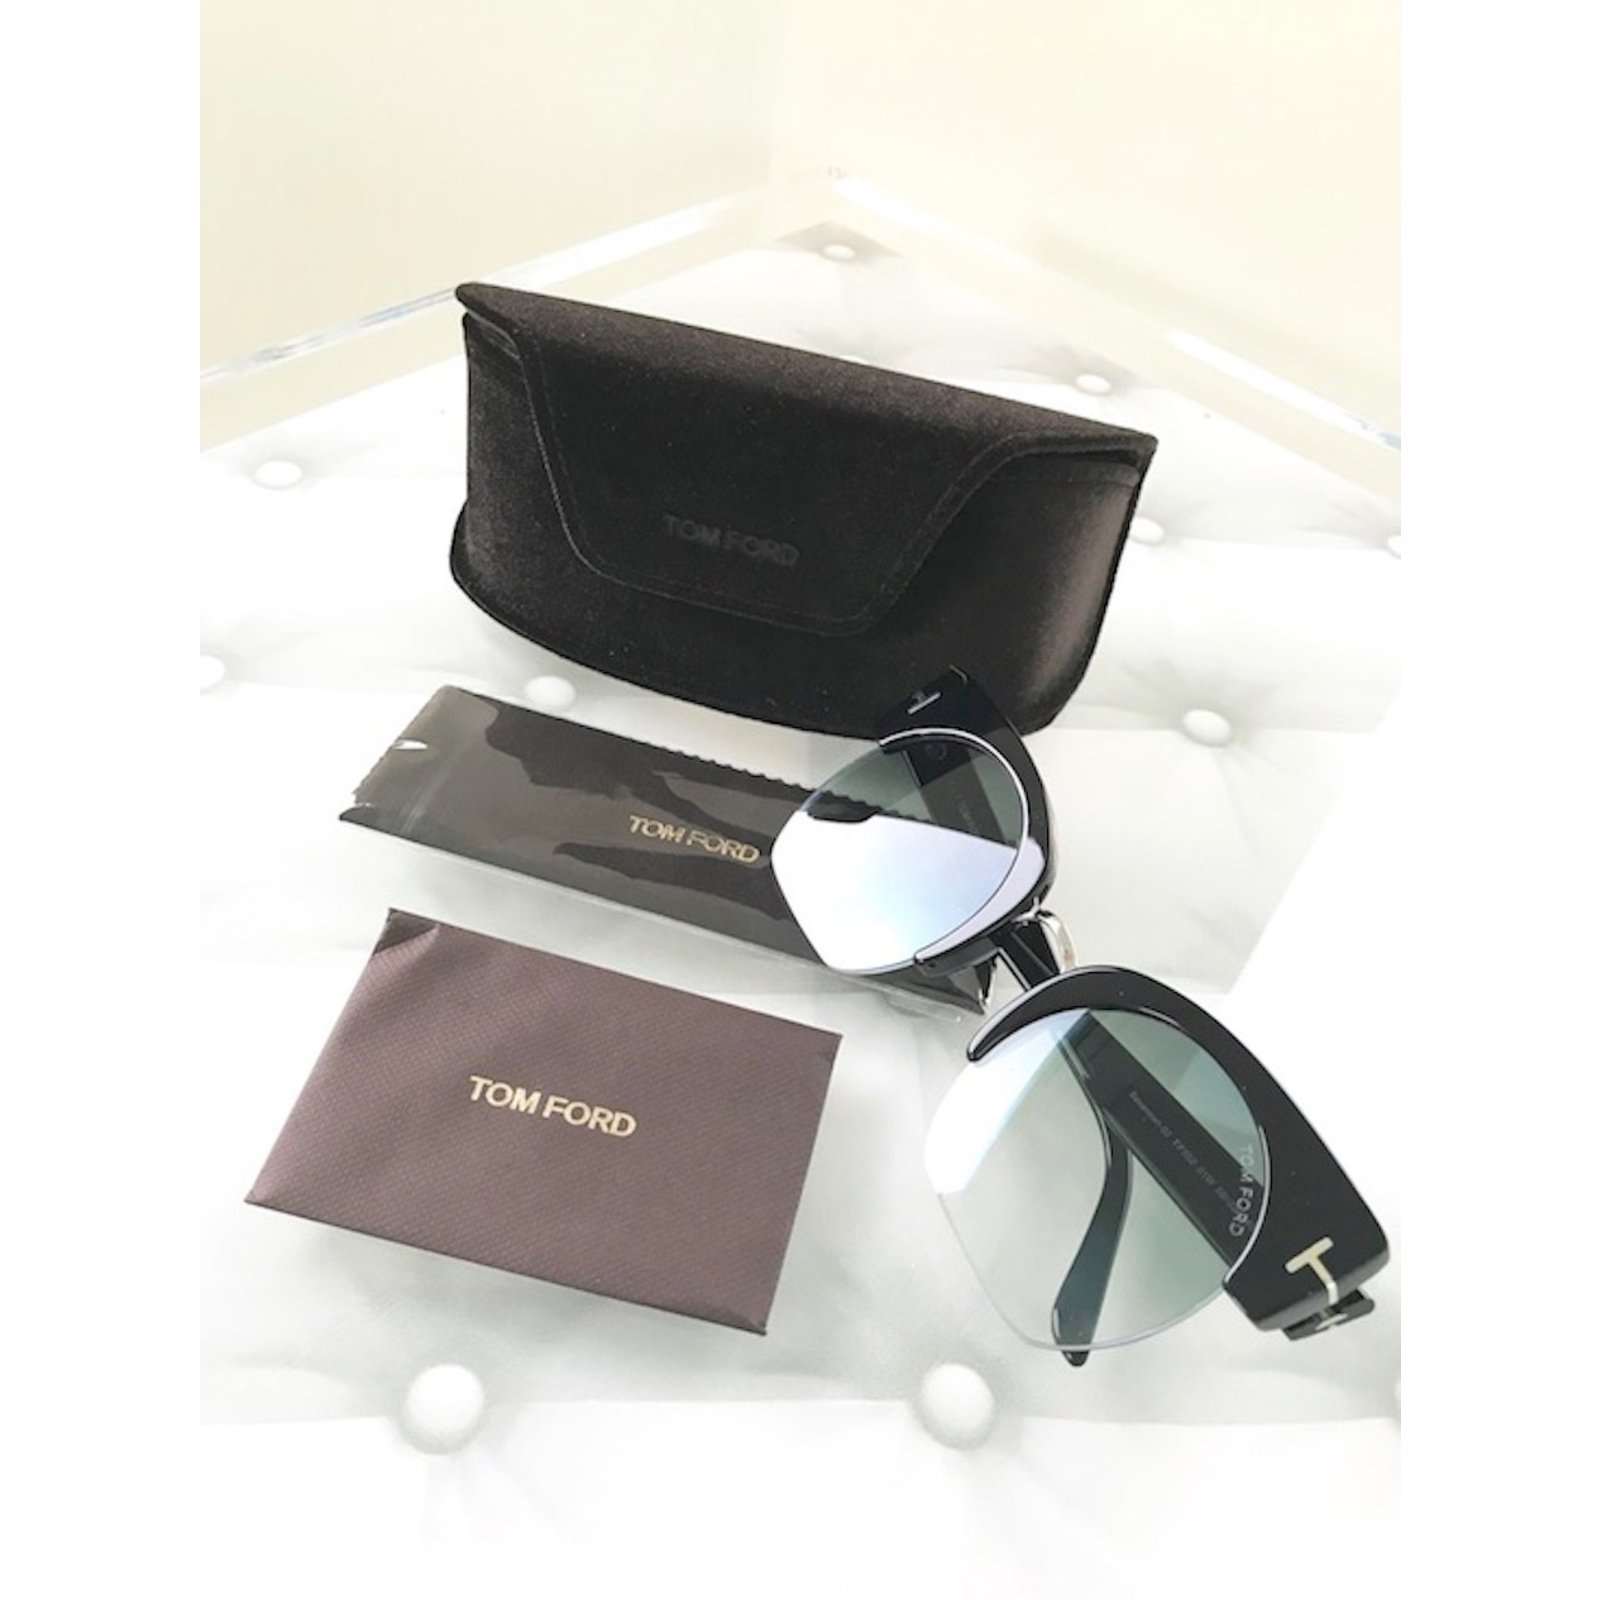 21c392b12bcc Tom Ford Sunglasses Sunglasses Plastic Black ref.56772 - Joli Closet